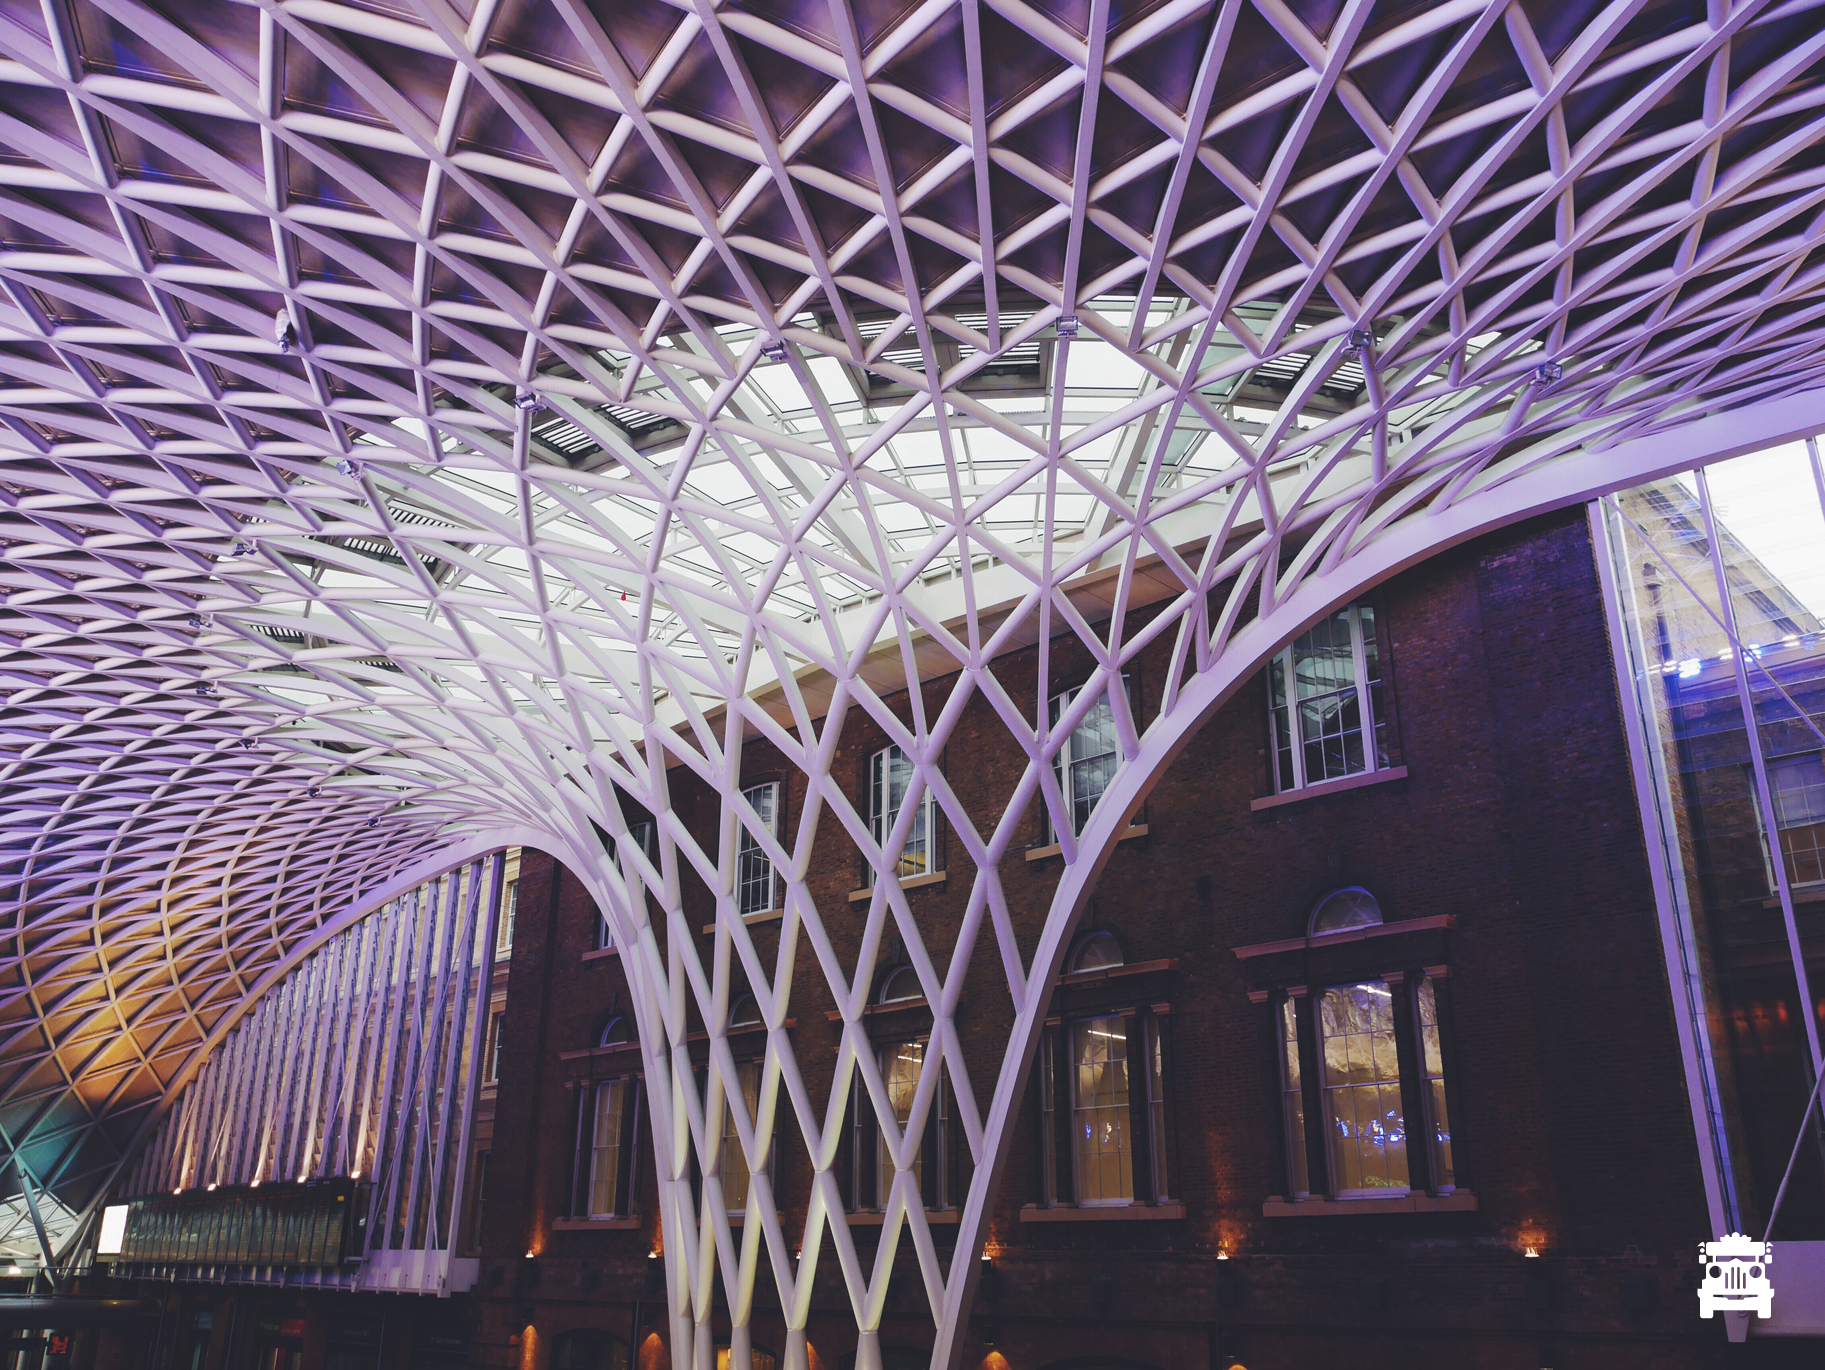 Amazing structure within King's Cross Station